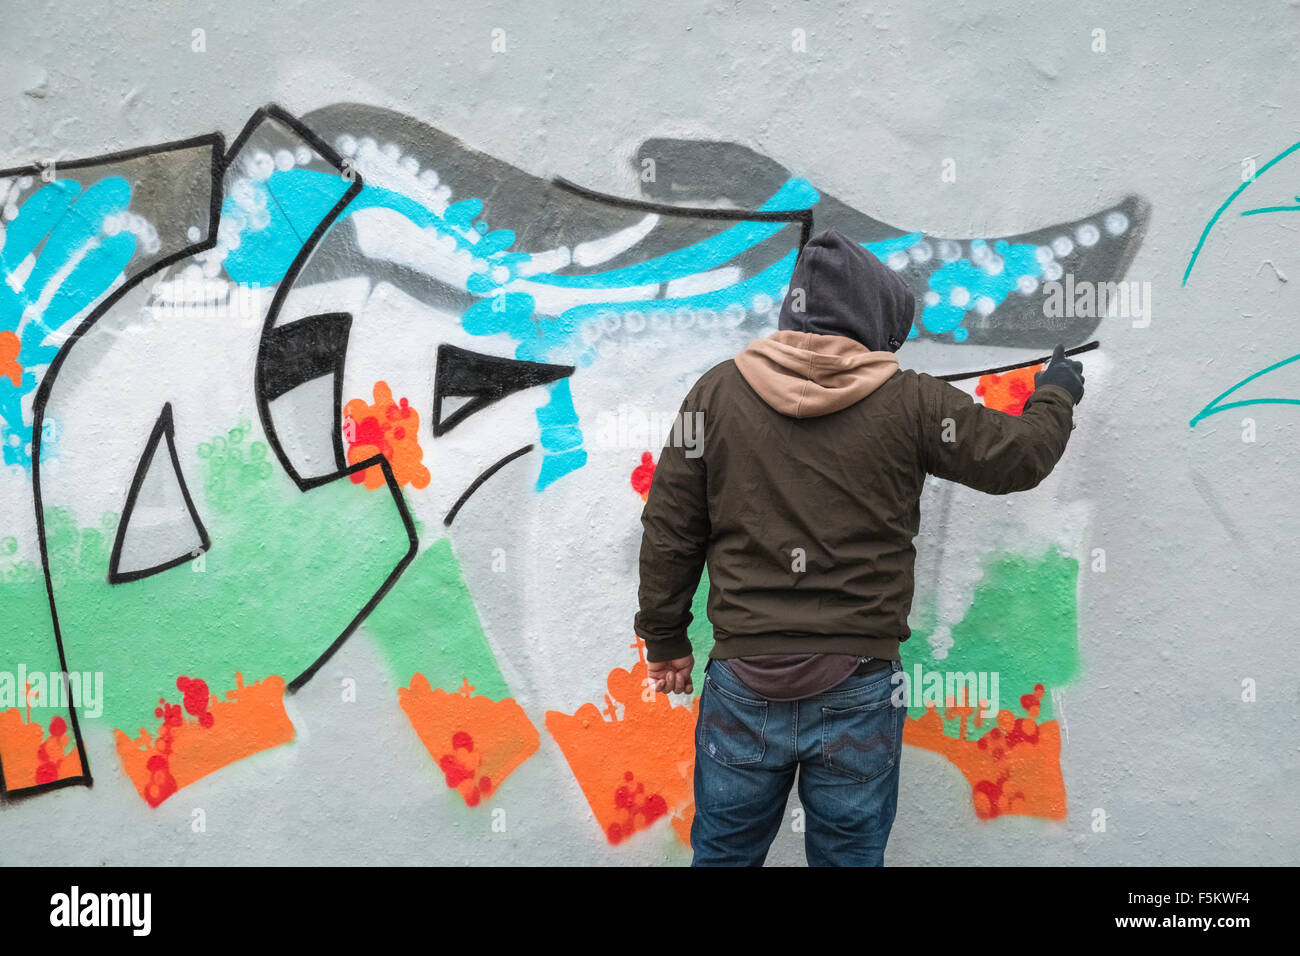 Graffiti artist spray painting part of former berlin wall mauerpark prenzlauer berg berlin germany